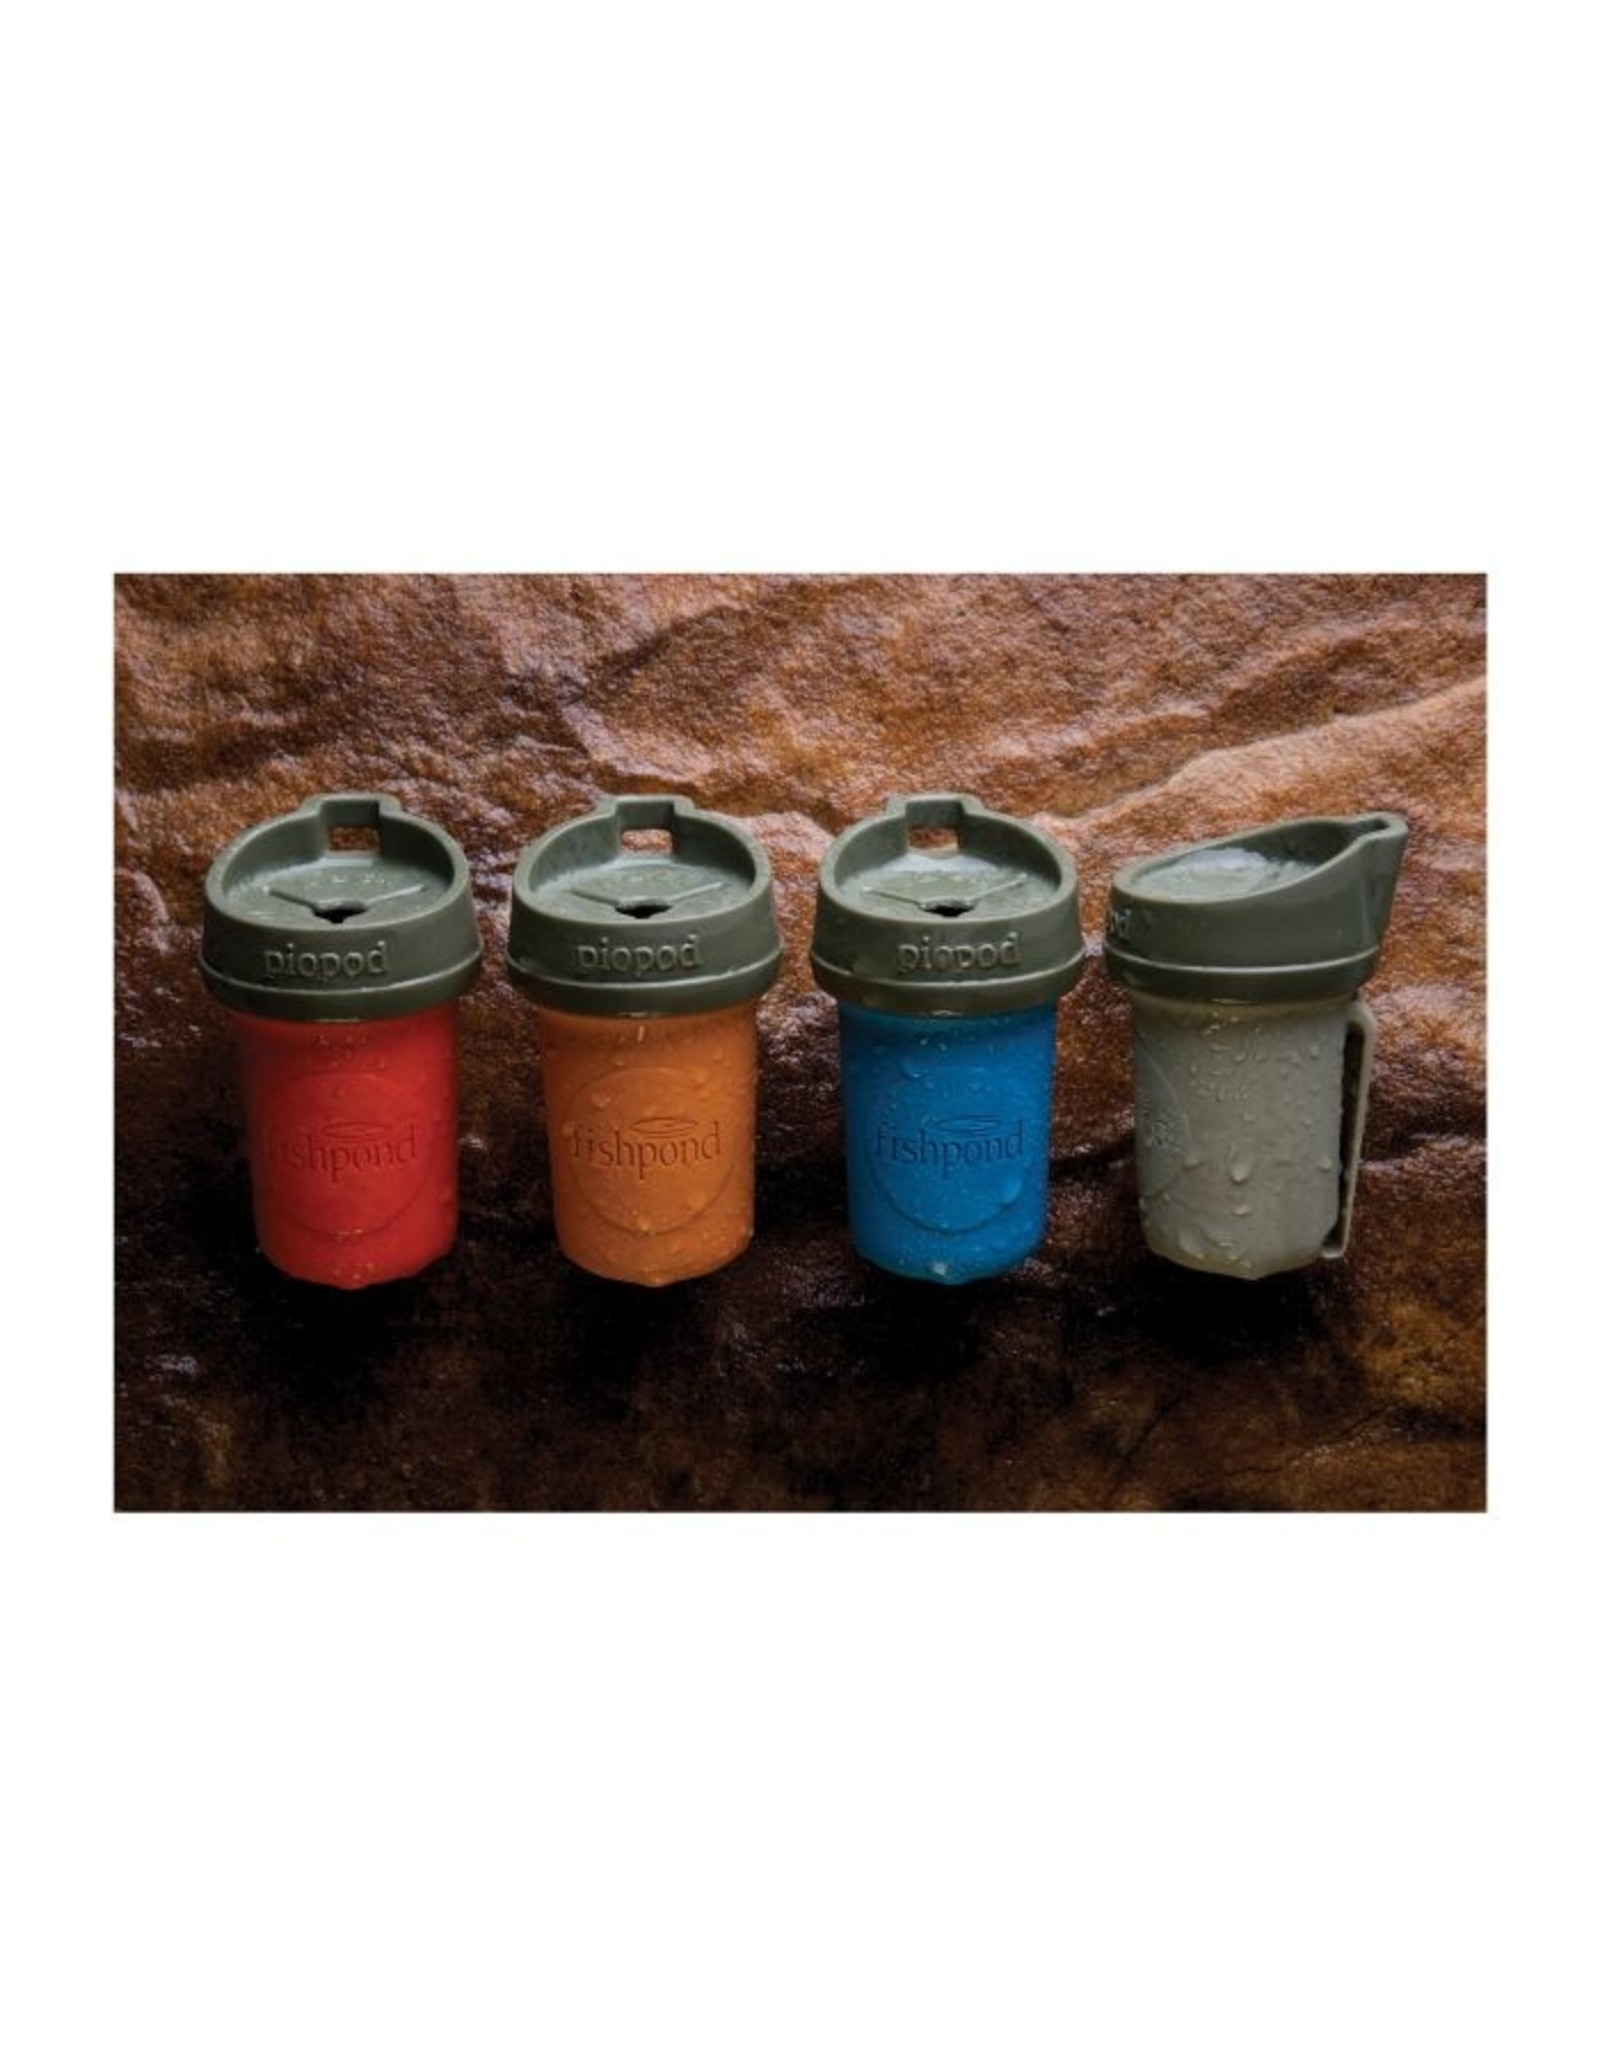 Fishpond Fishpond - PioPod Microtrash Container